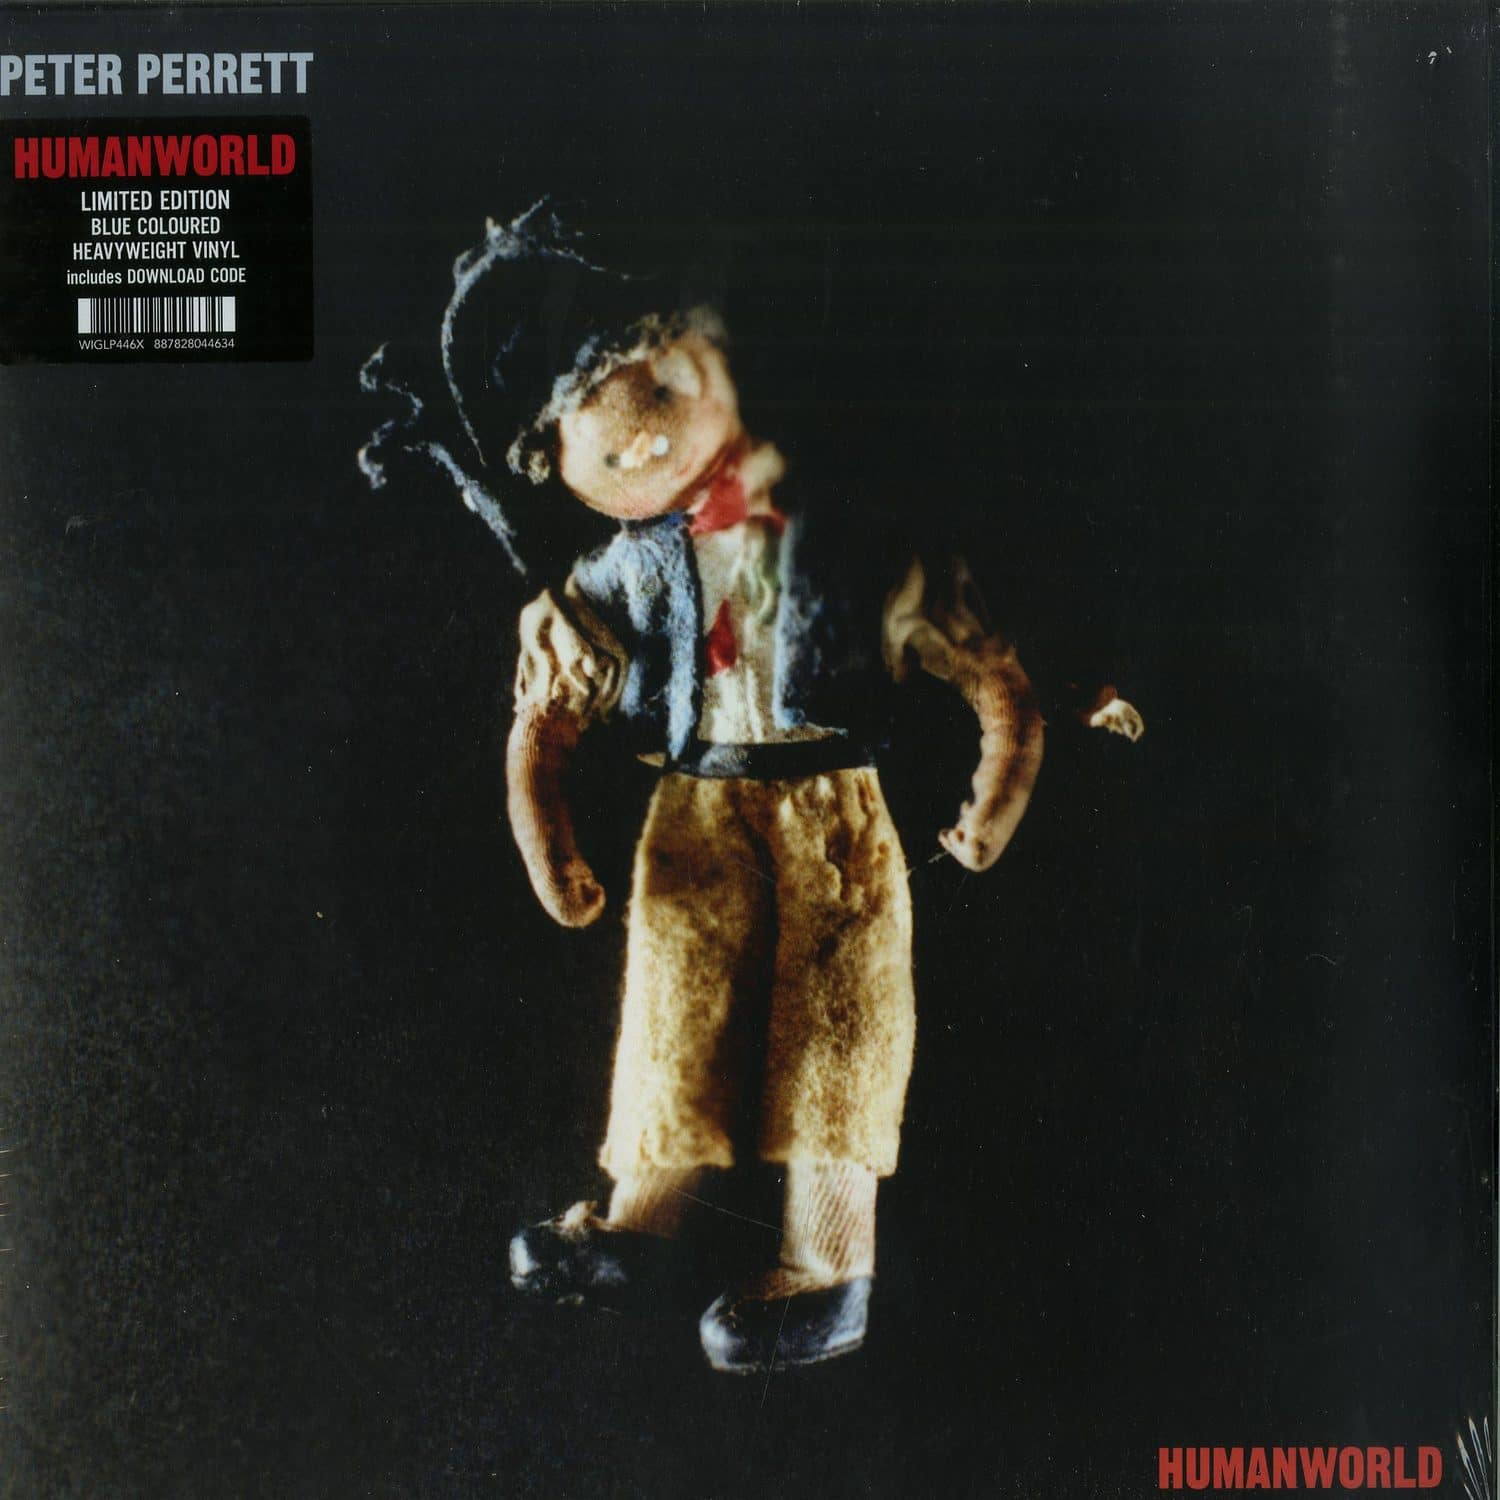 Peter Perrett - HUMANWORLD